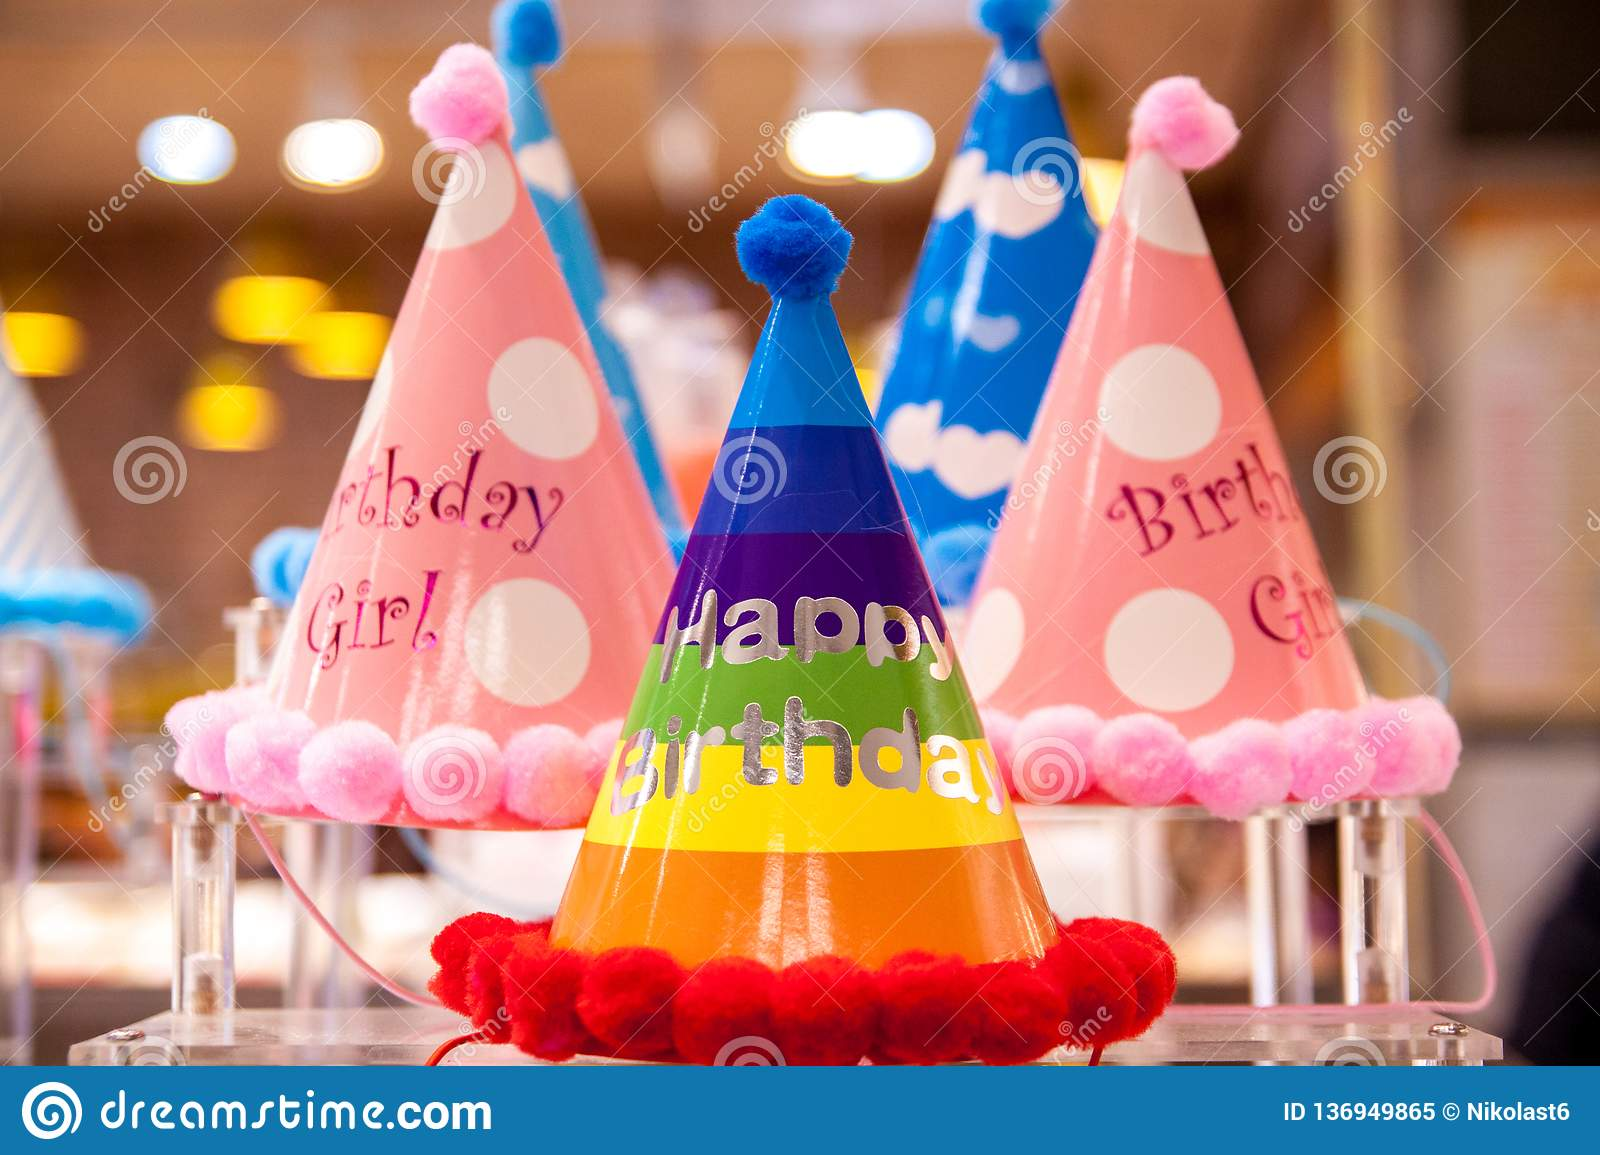 Beautiful Funny Birthday Hats With Bright Colors Festive Background The Inscription Happy